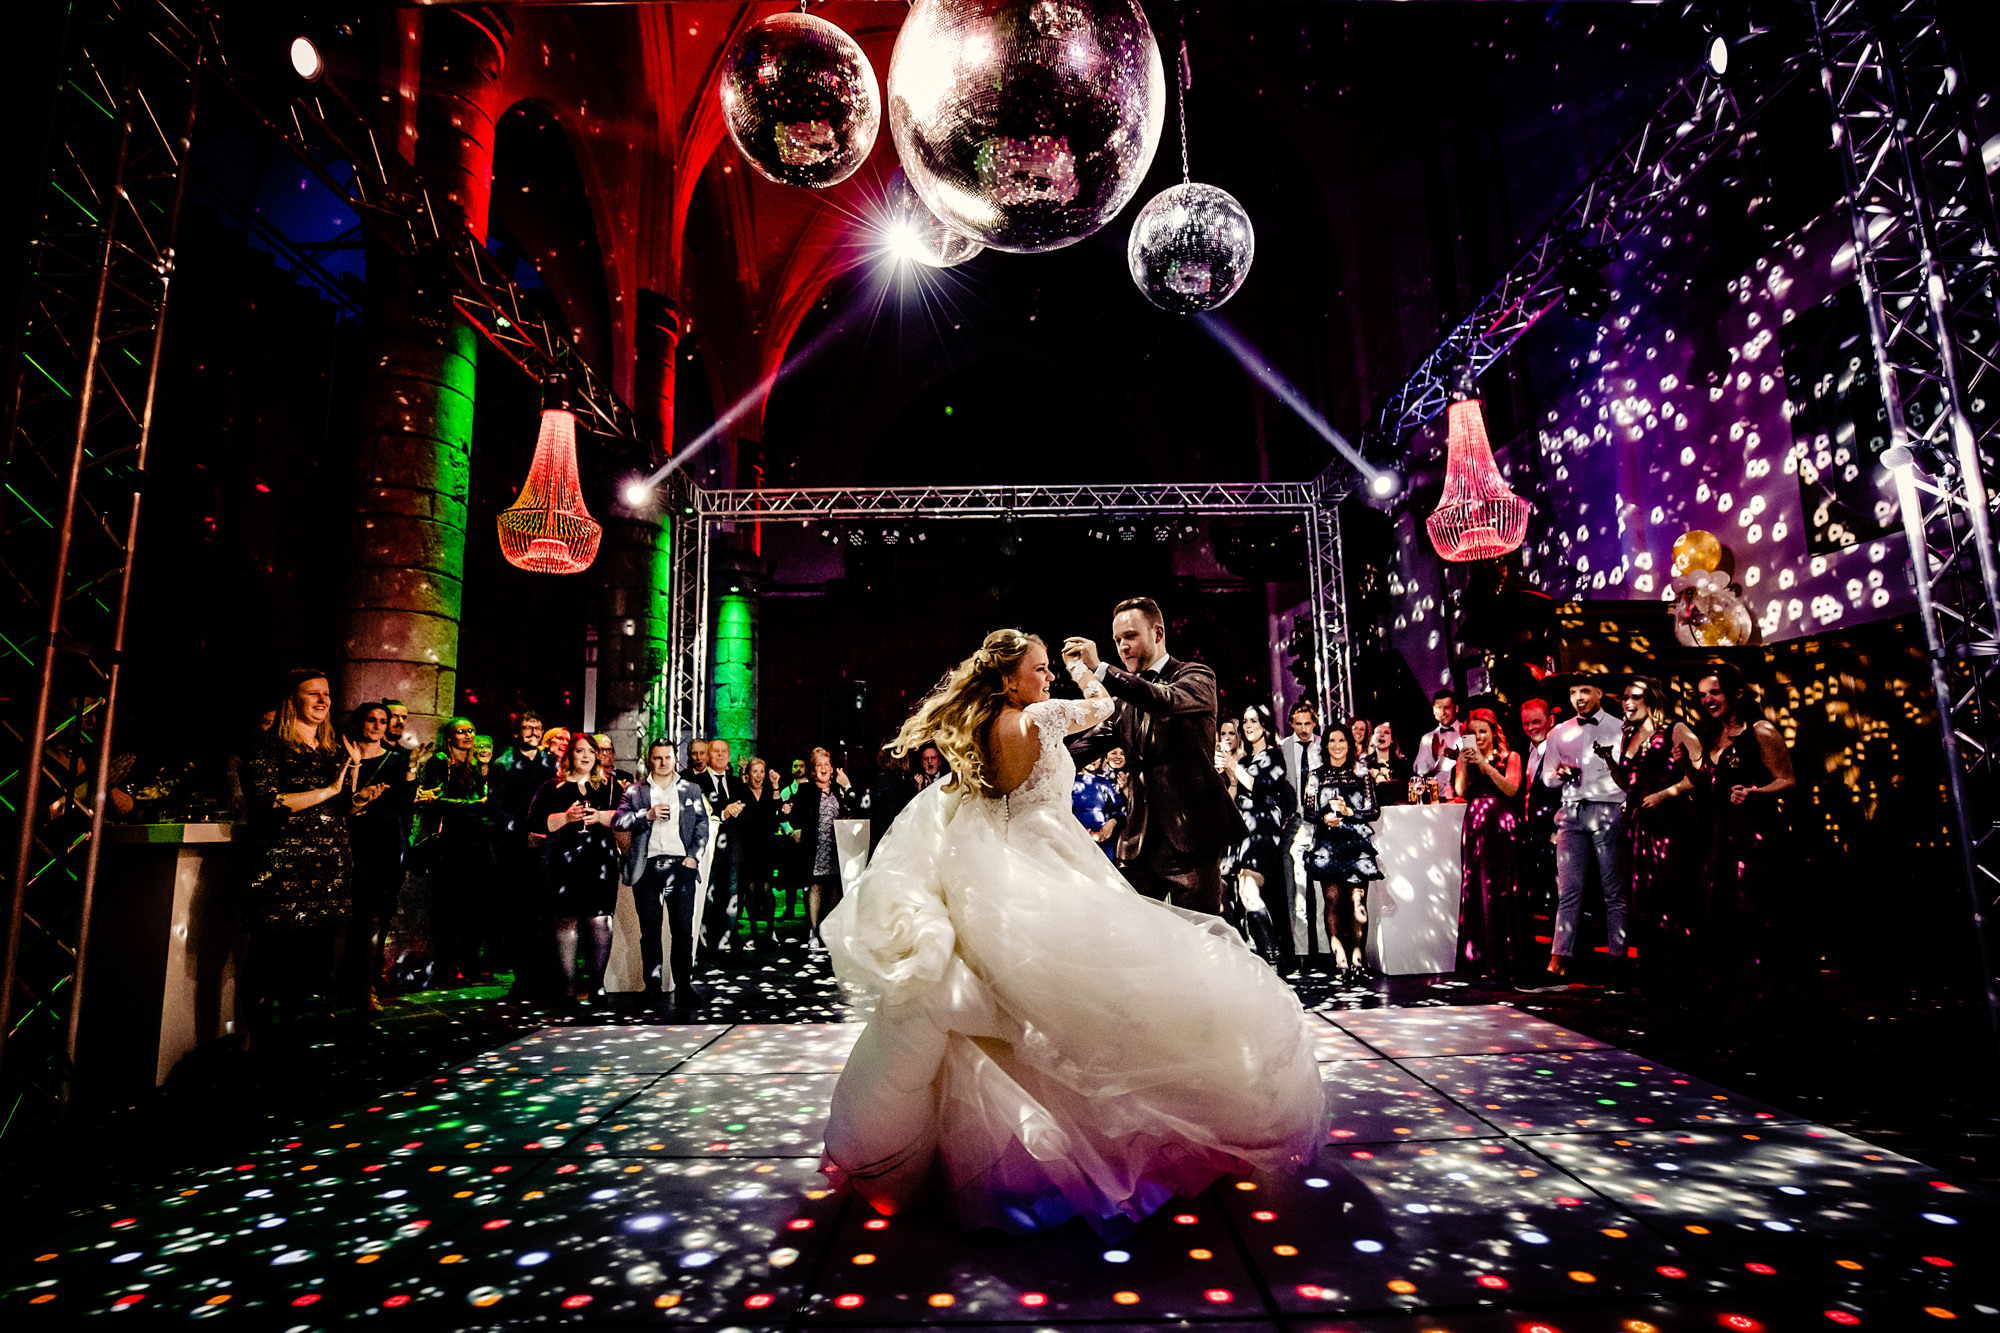 Festive first dance photo by Eppel Photography